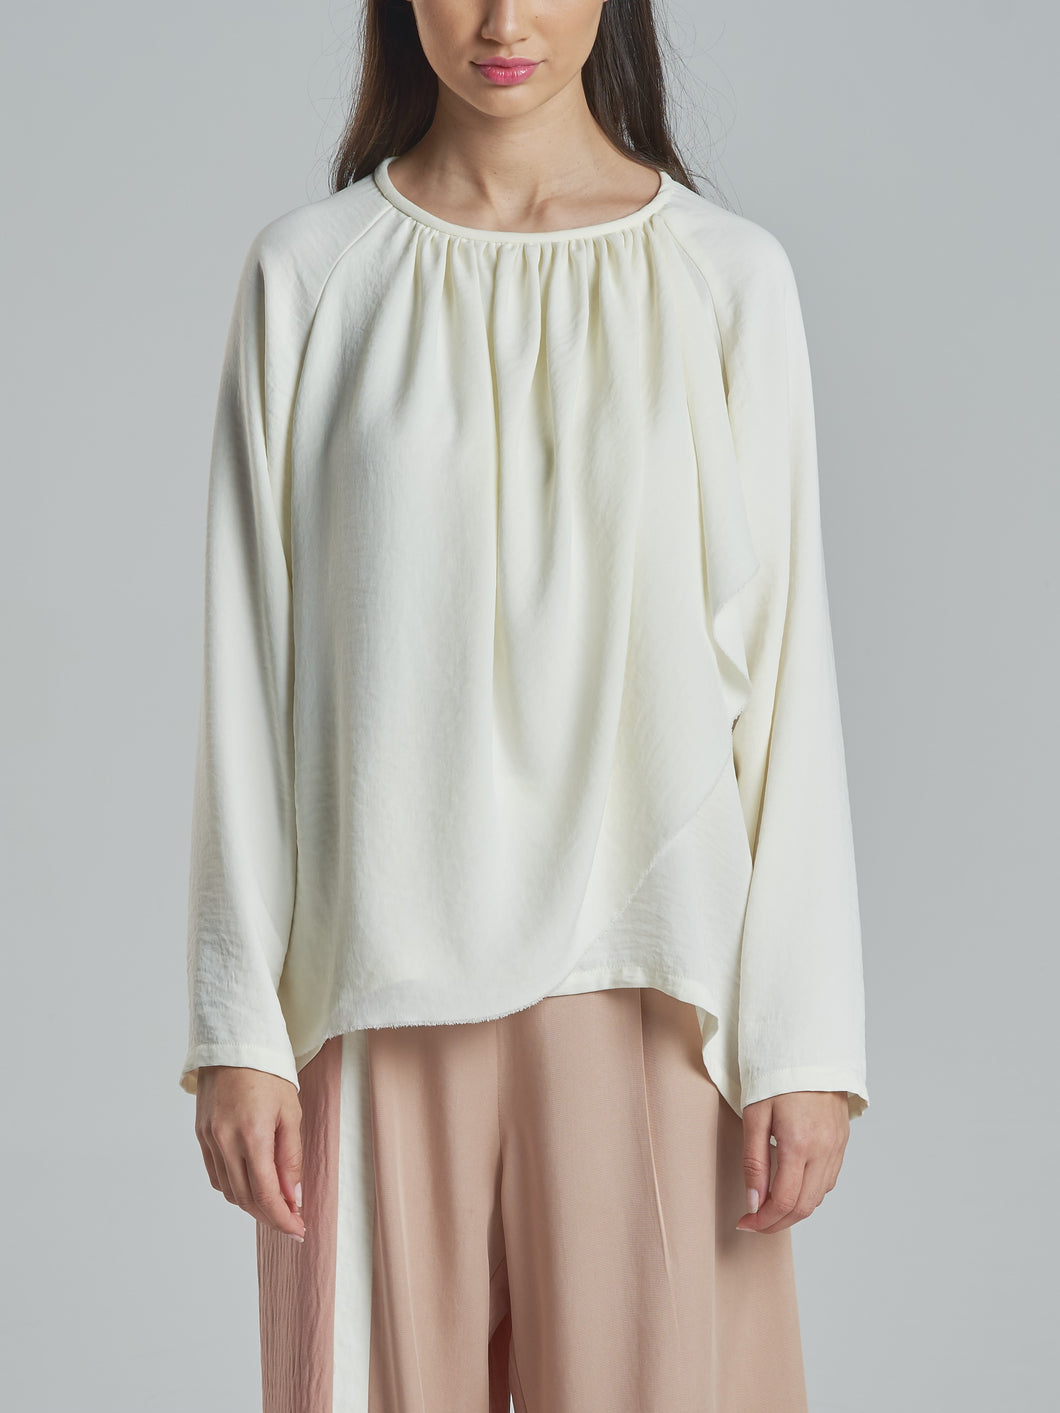 Elegant Off-White Top with Gathering